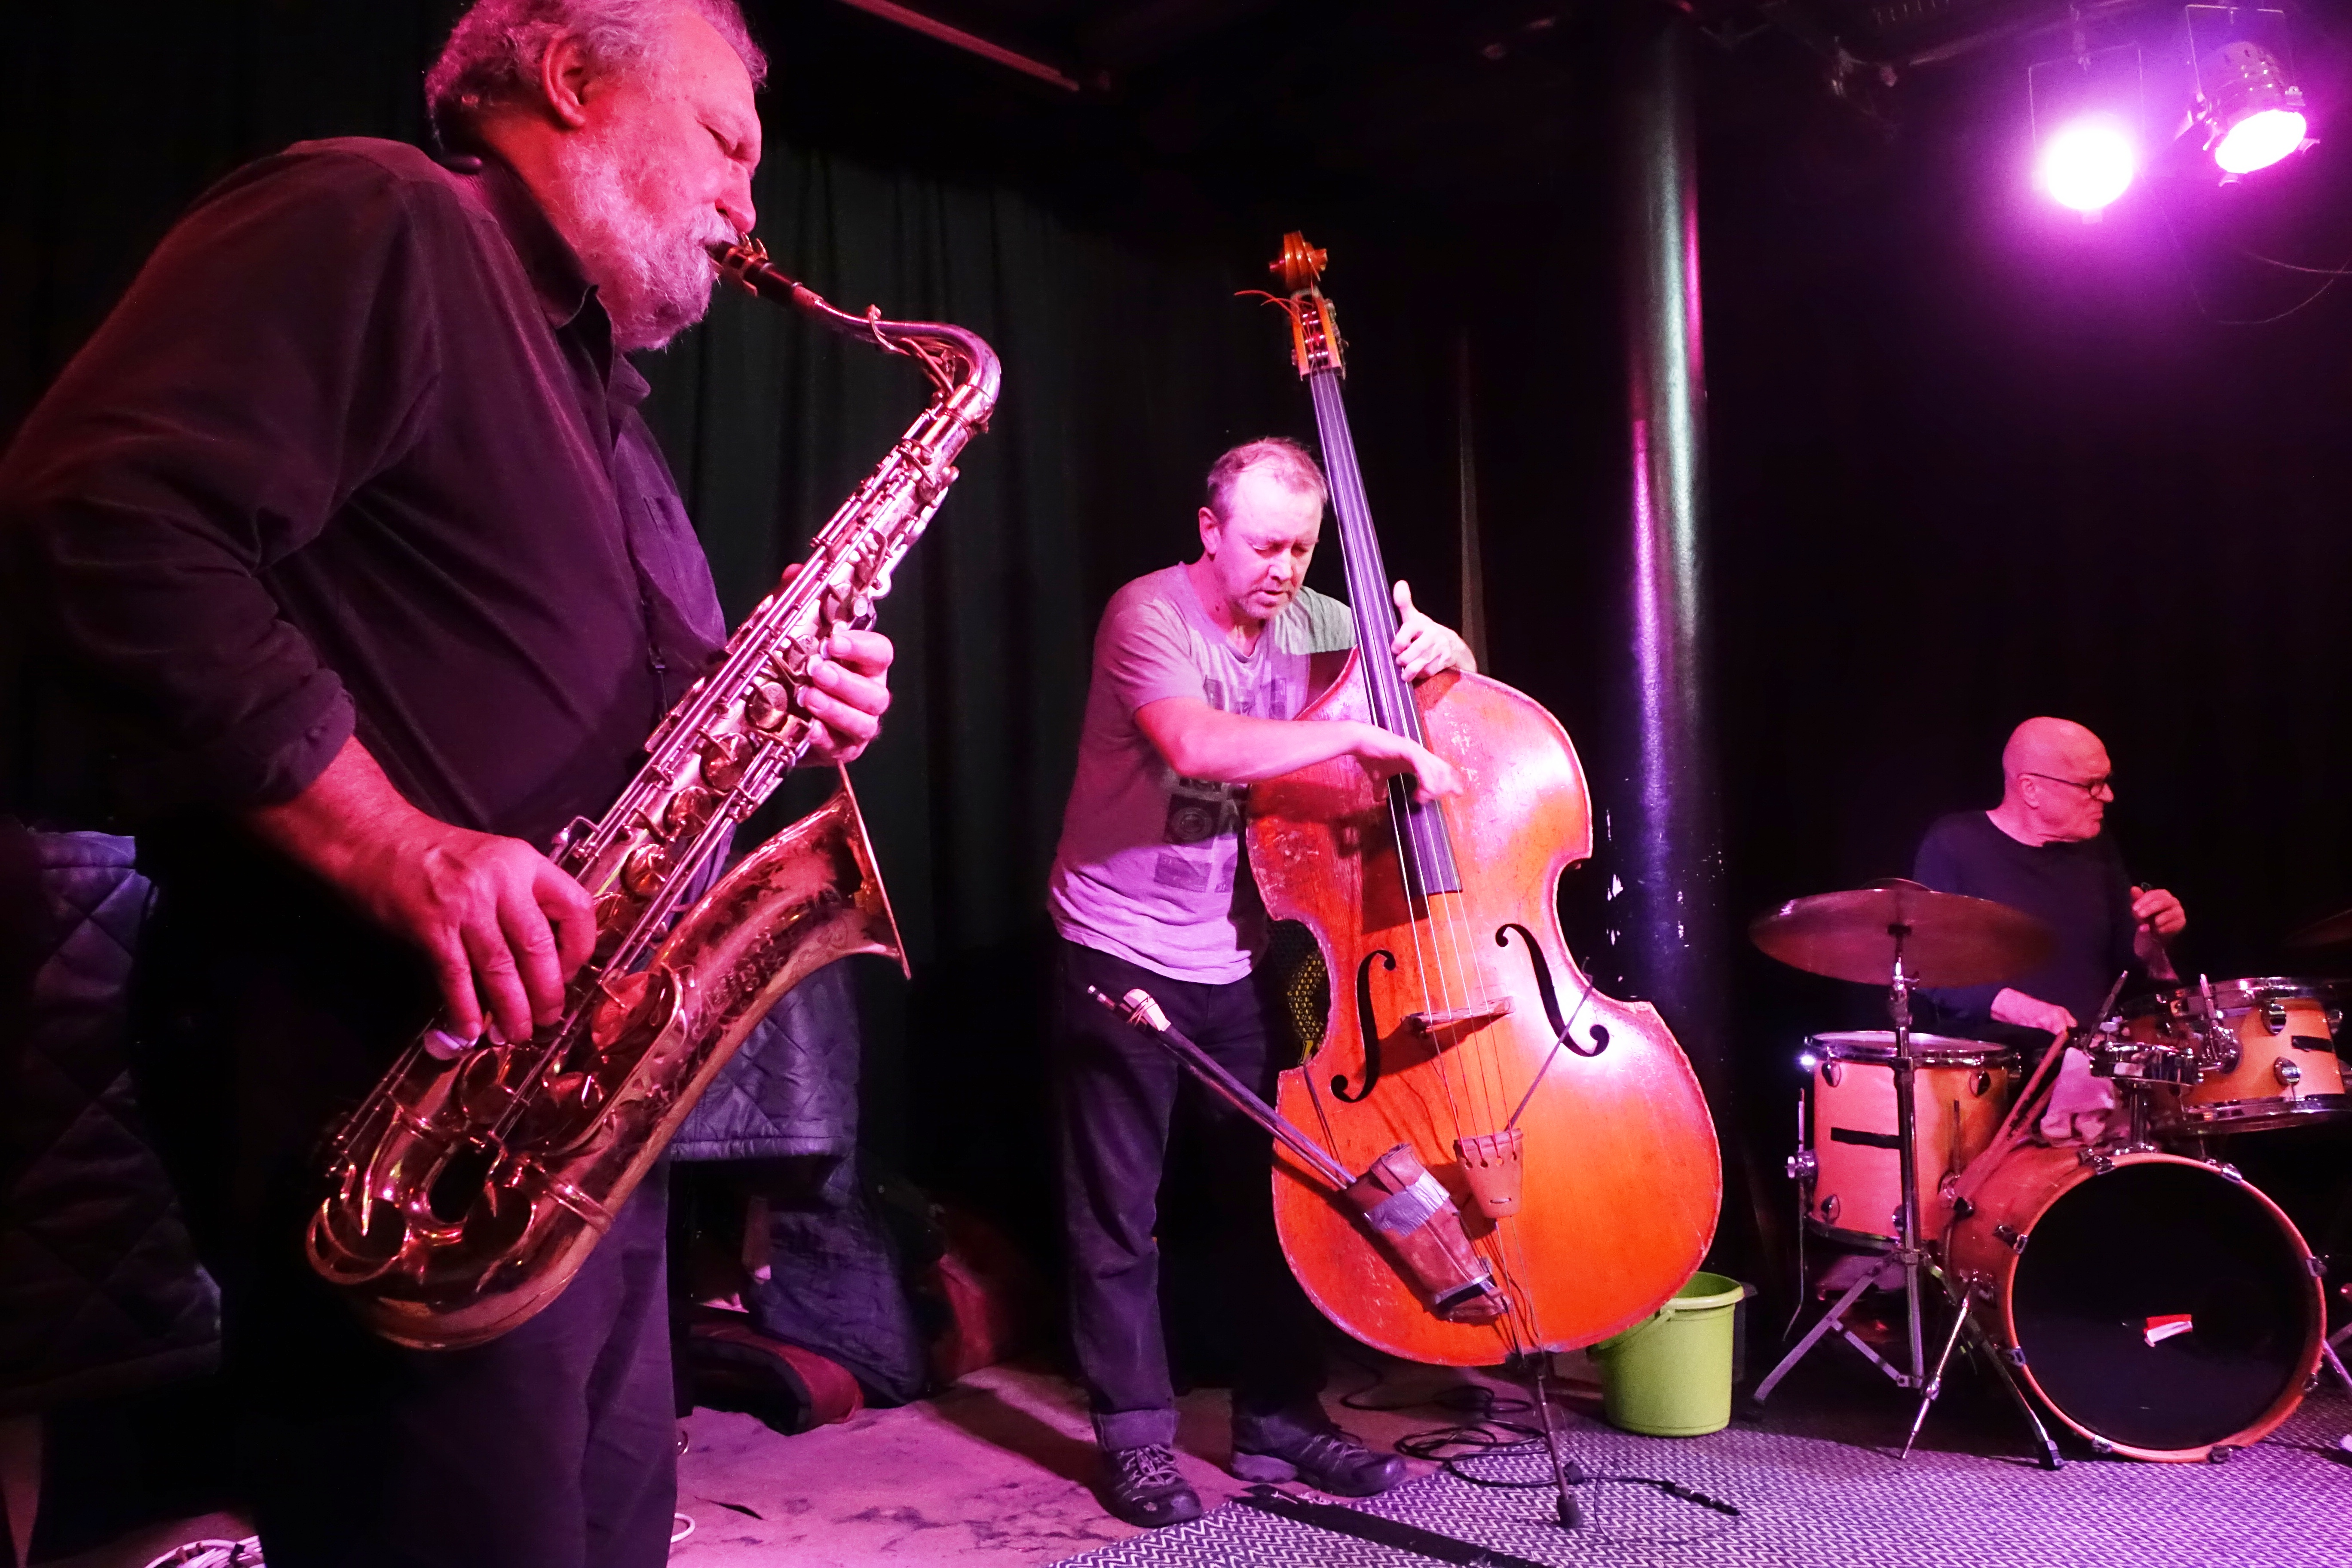 Evan Parker Trio at the Vortex, London in December 2018